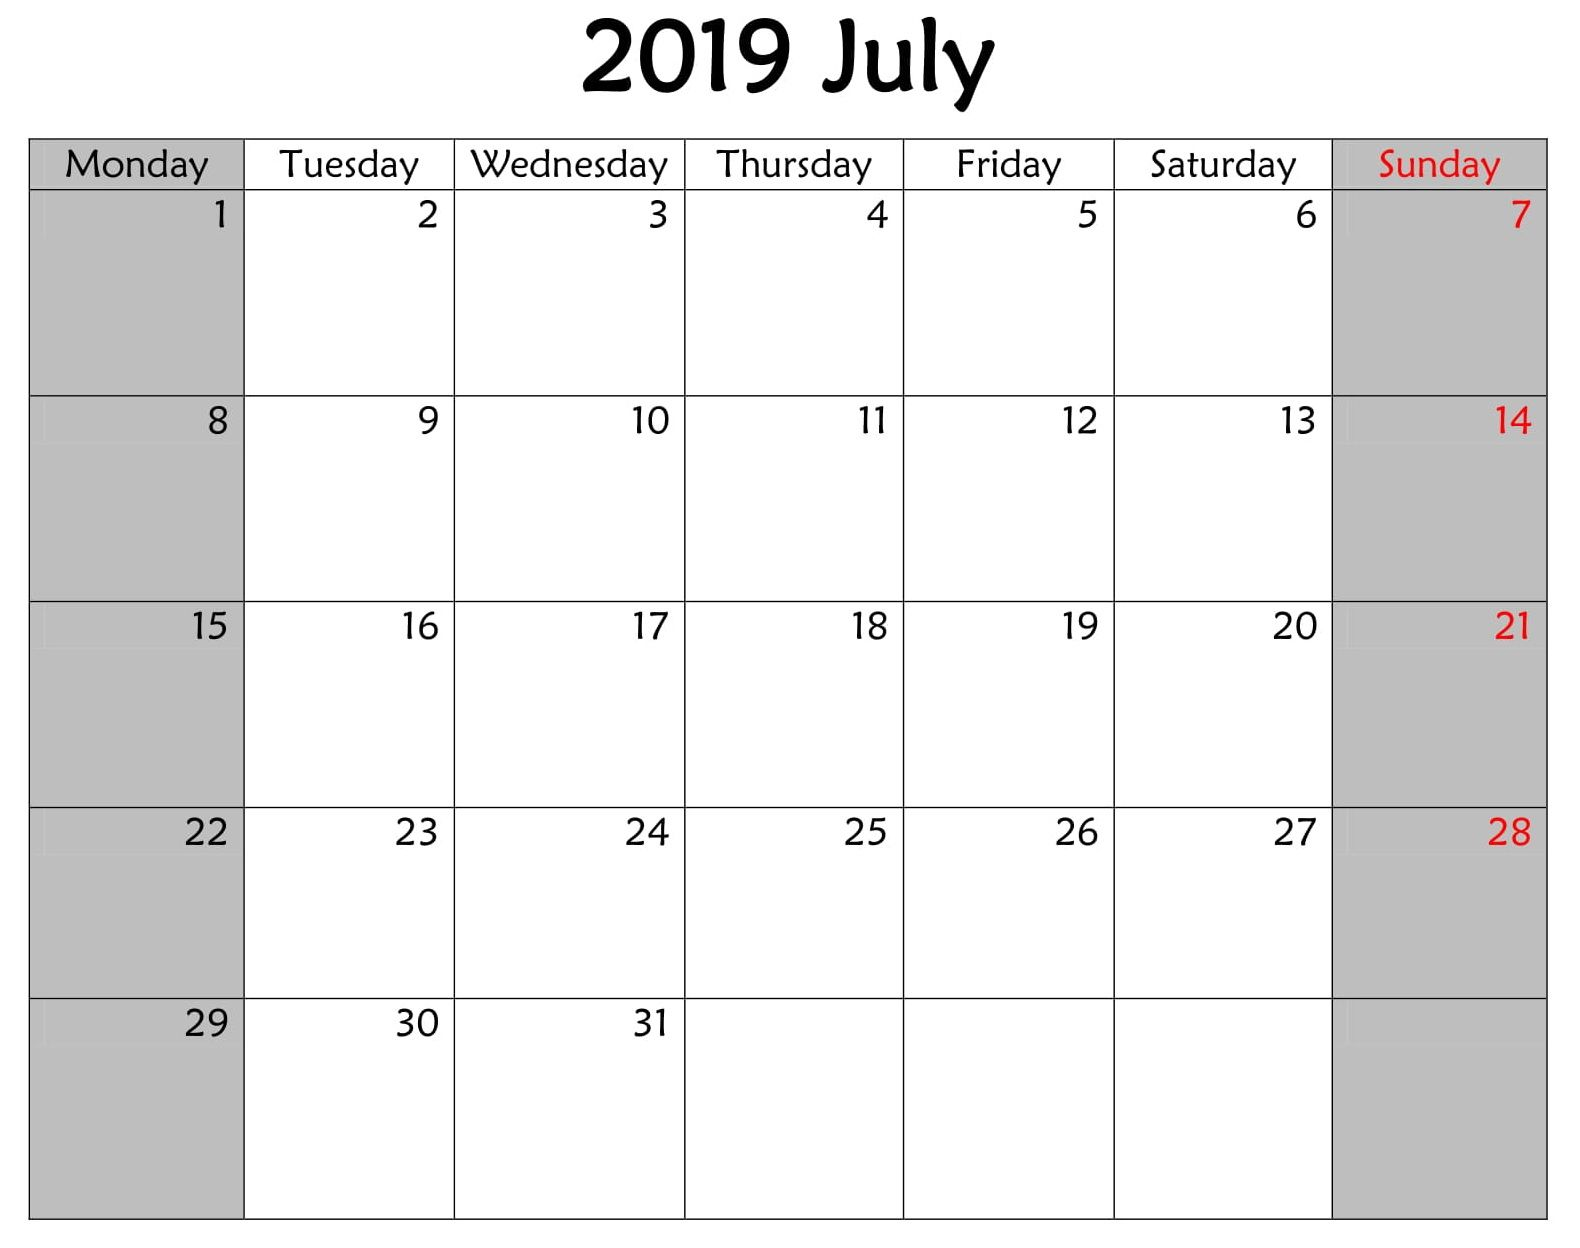 Calendar July 2019 Business With Holidays Holiday Words